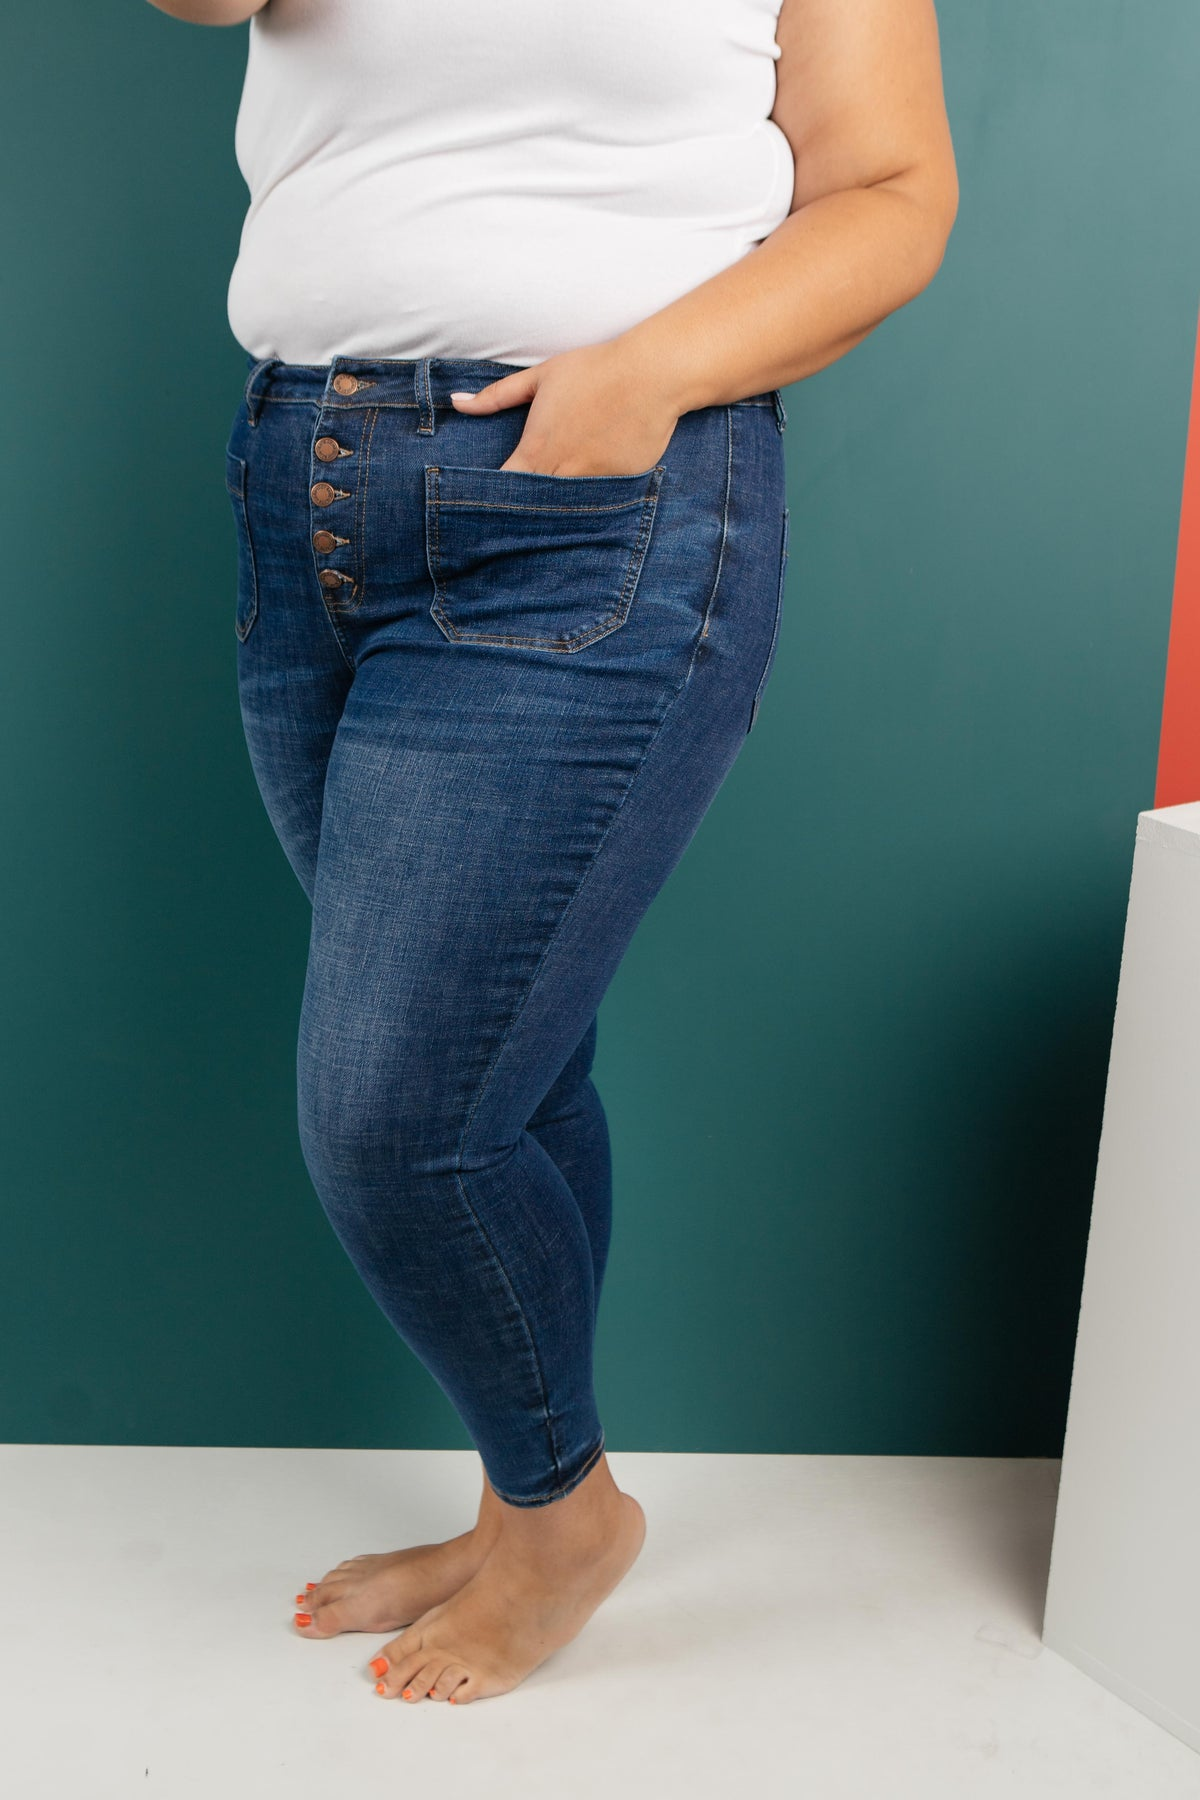 The Unique Pockets Medium Wash Jeans